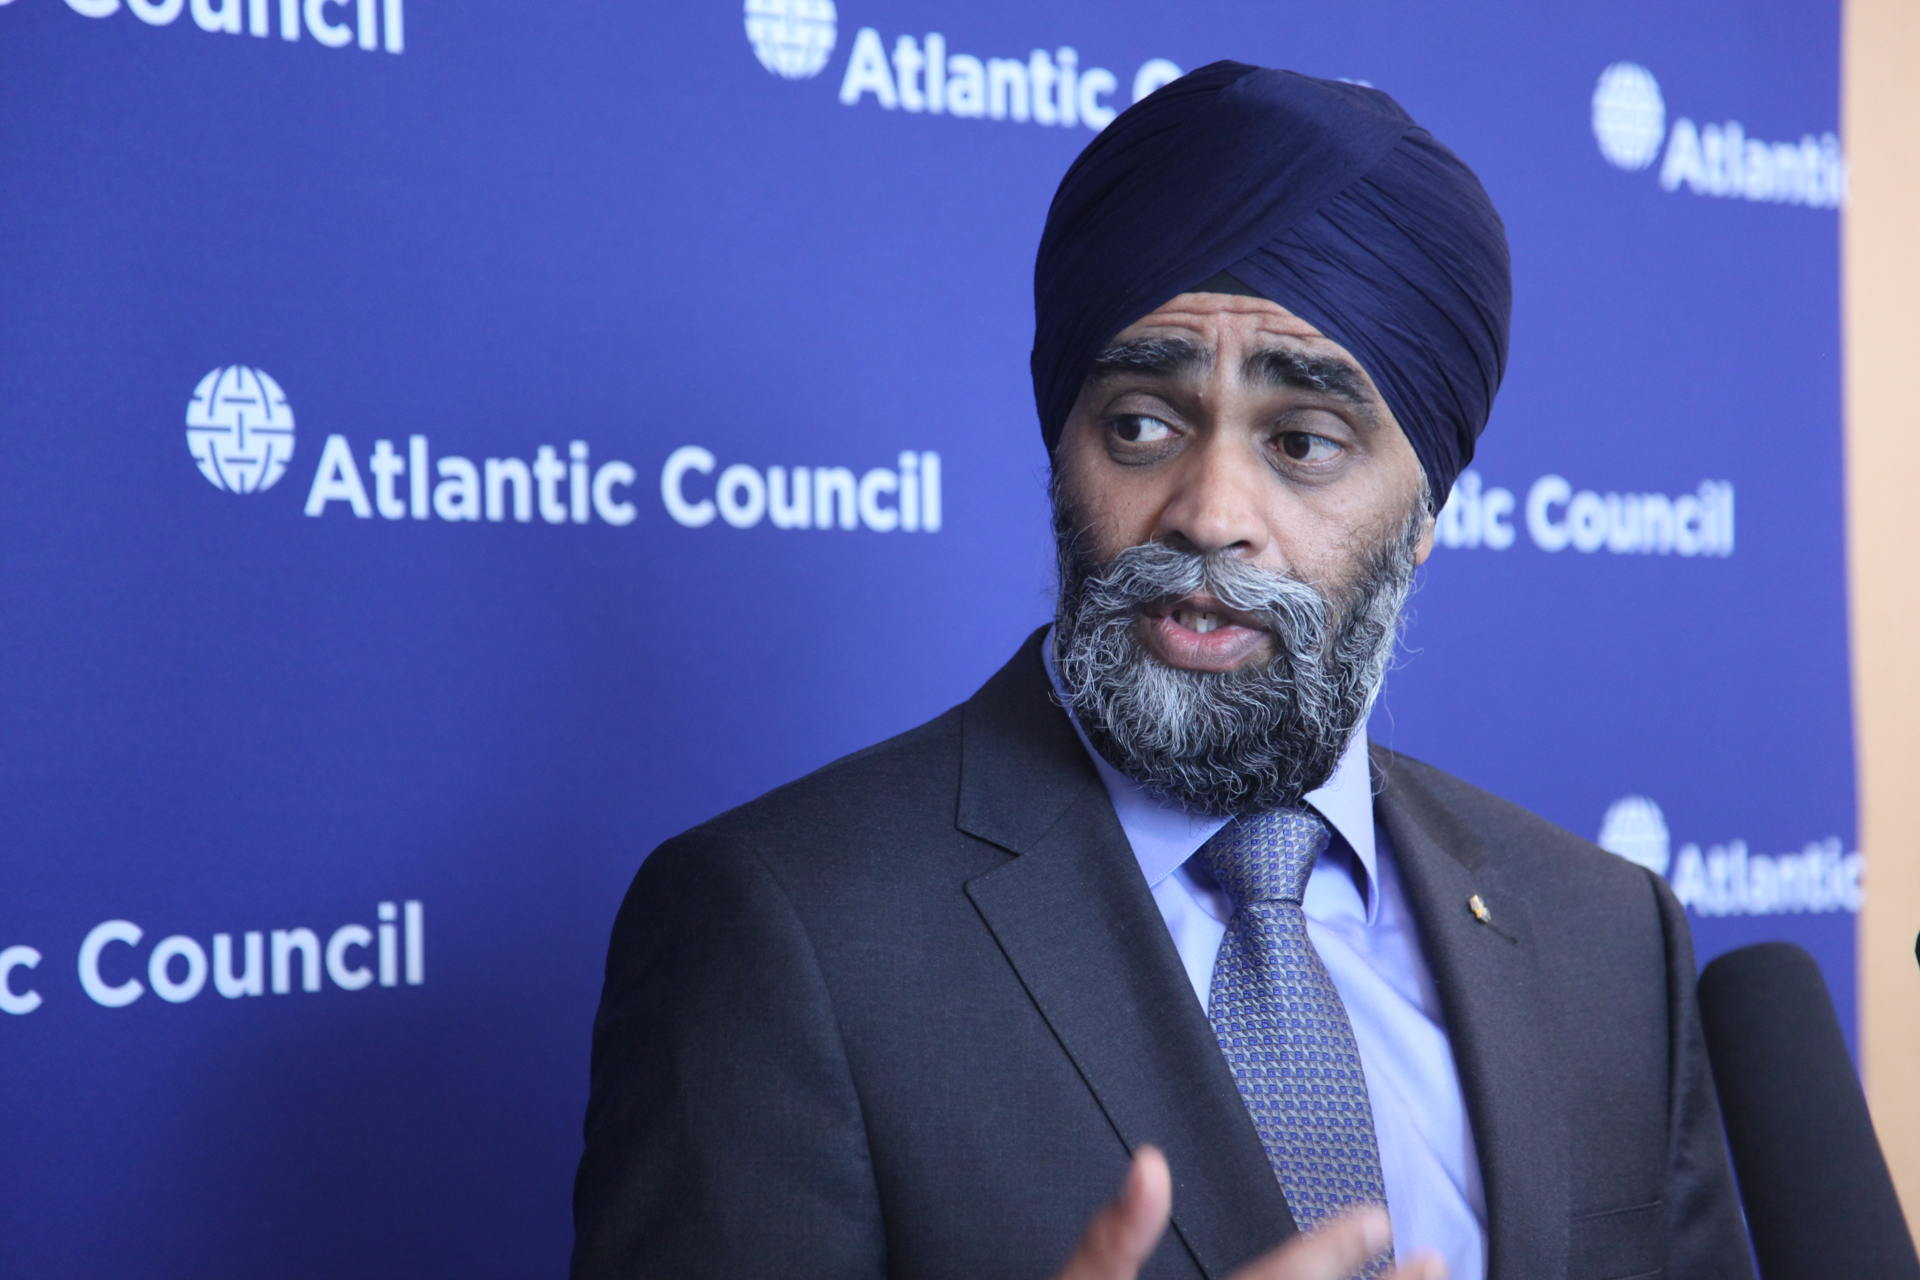 Contributions to NATO More Than Just Budgetary, says Canada's Defense Minister